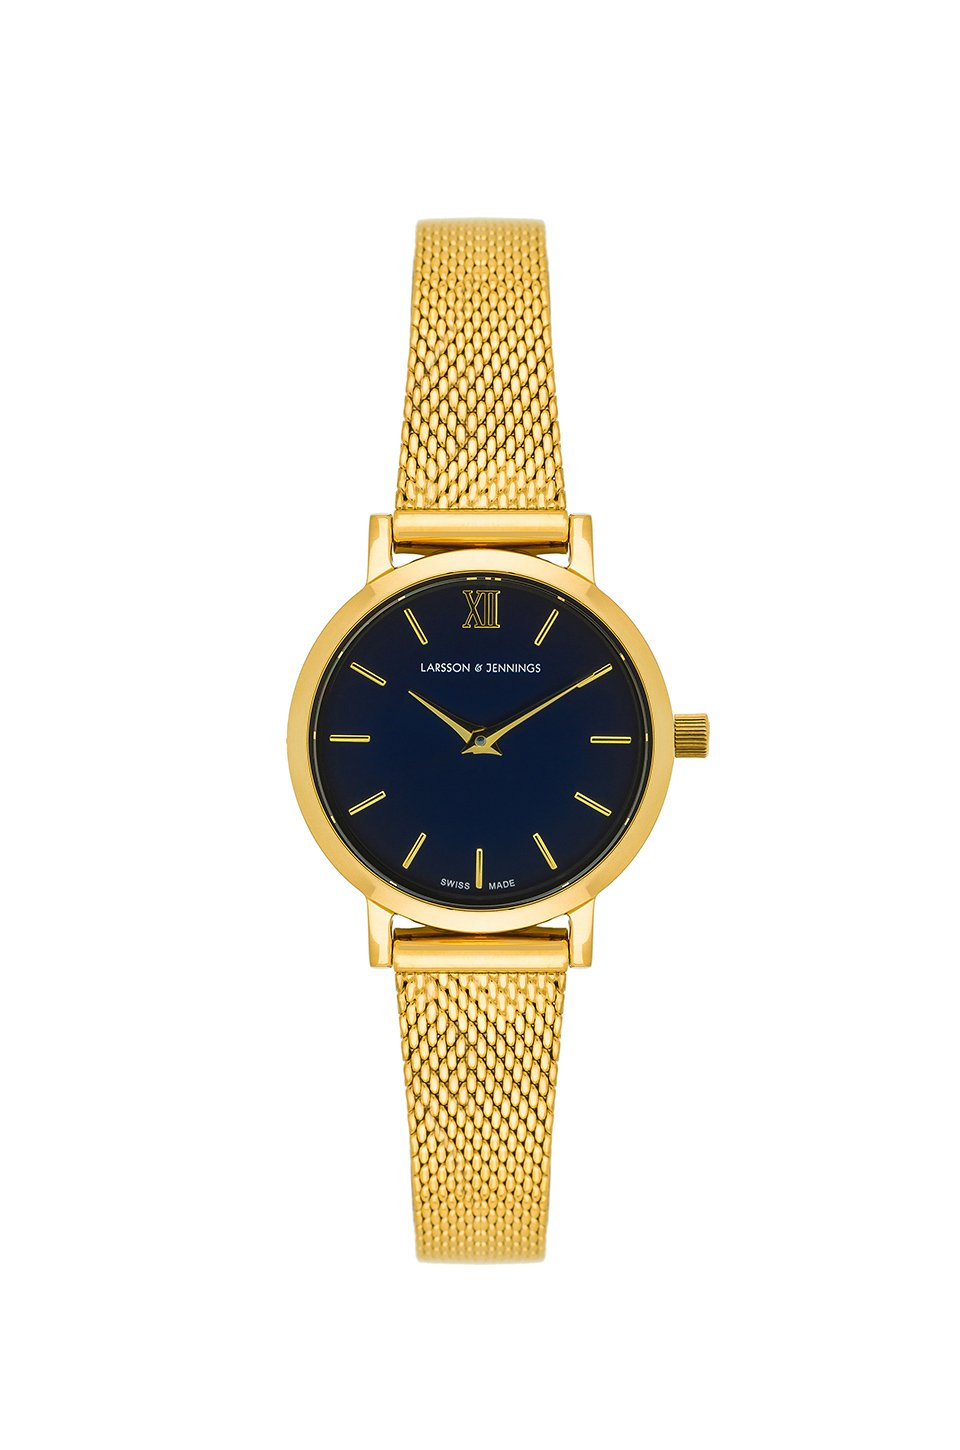 5th Anniversary Lugano Solaris 26mm Watch